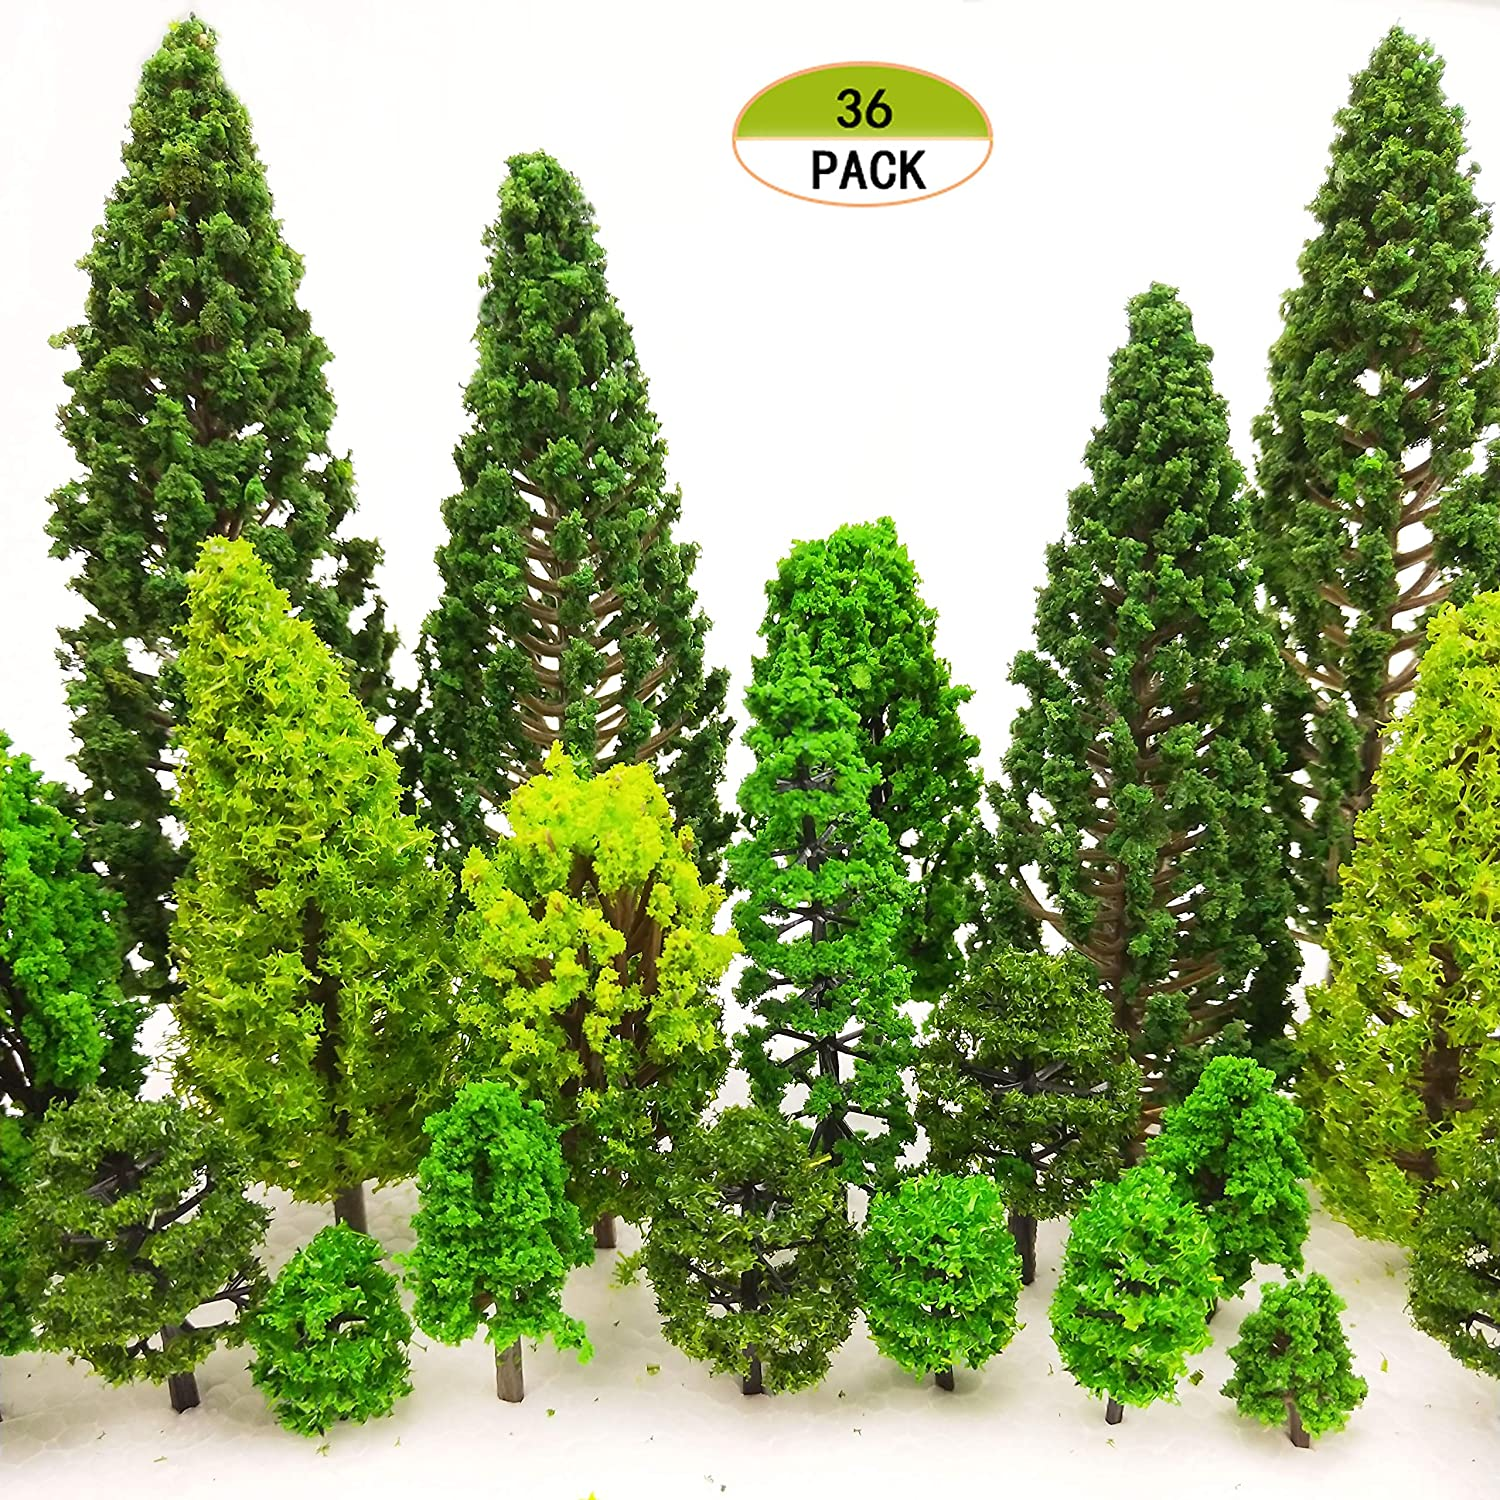 MOMOONNON 36 Pieces Model Trees 1 36-6 inch Mixed Model Tree Train Scenery  Architecture Trees Fake Trees for DIY Crafts, Building Model, Scenery